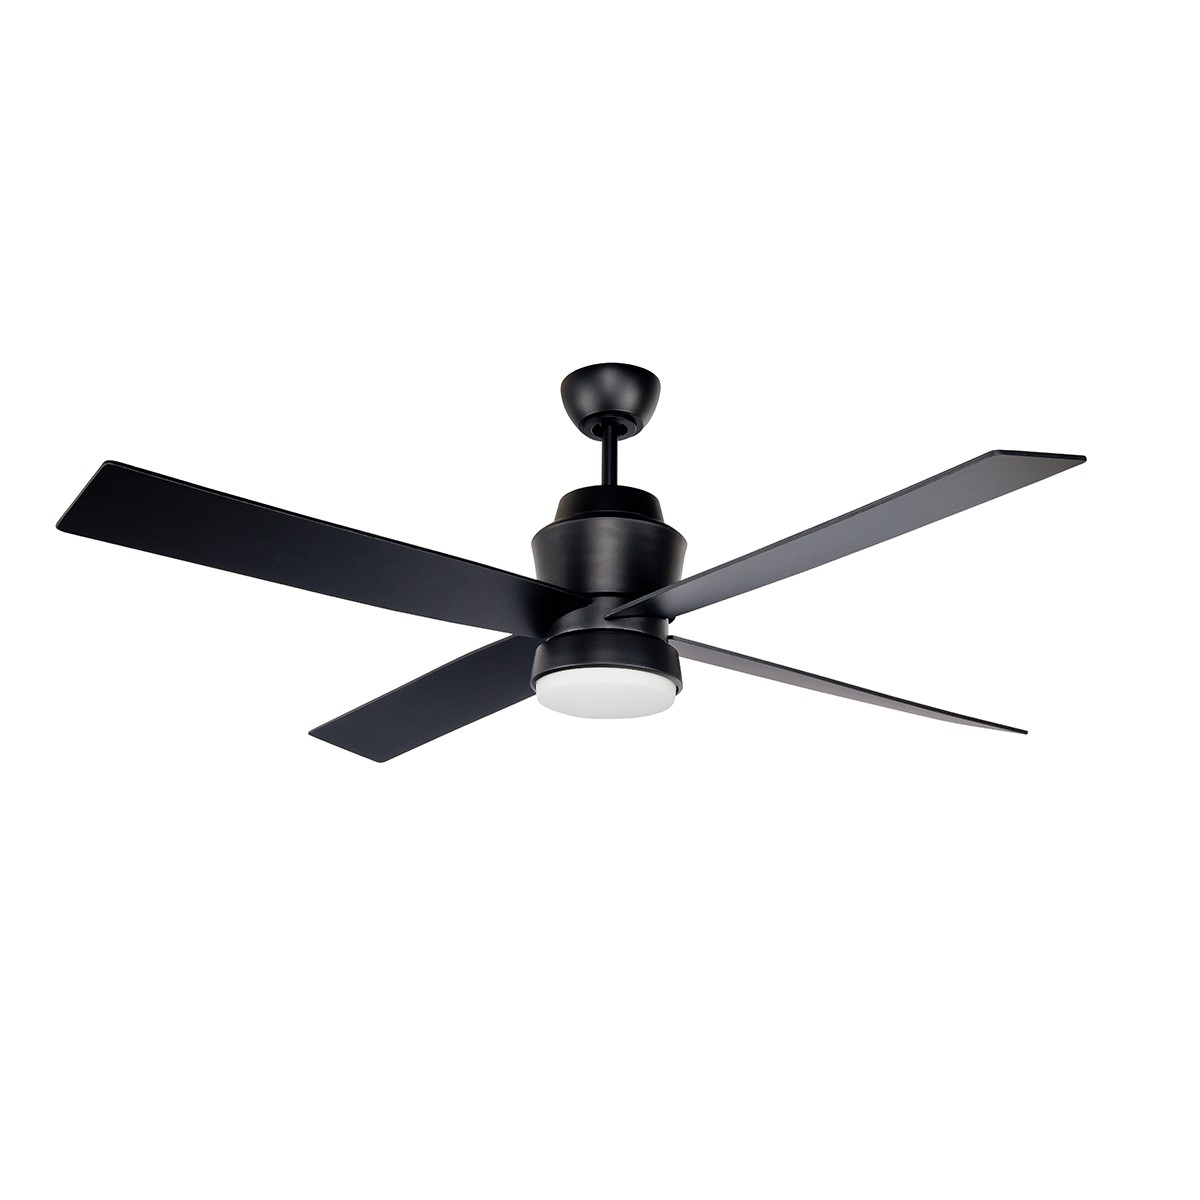 Quorum Outdoor Ceiling Fans For Well Known Impressive Black Outdoor Ceiling Fan Prologue Stori Modern Fans With (Gallery 17 of 20)